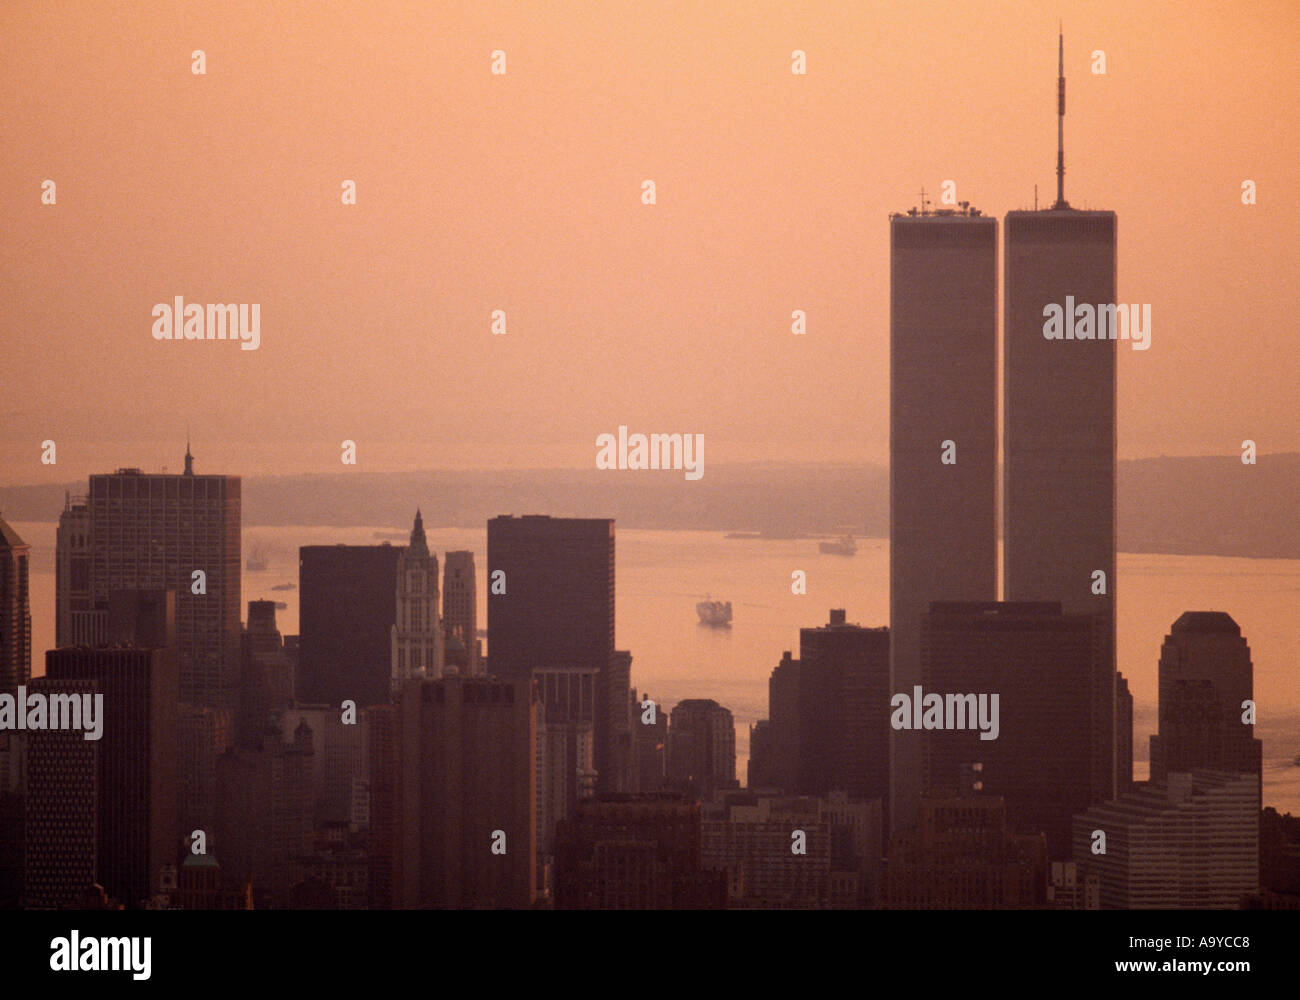 World Trade Center Twin Towers in Manhattan Island in New York City in the United States of America USA - Stock Image